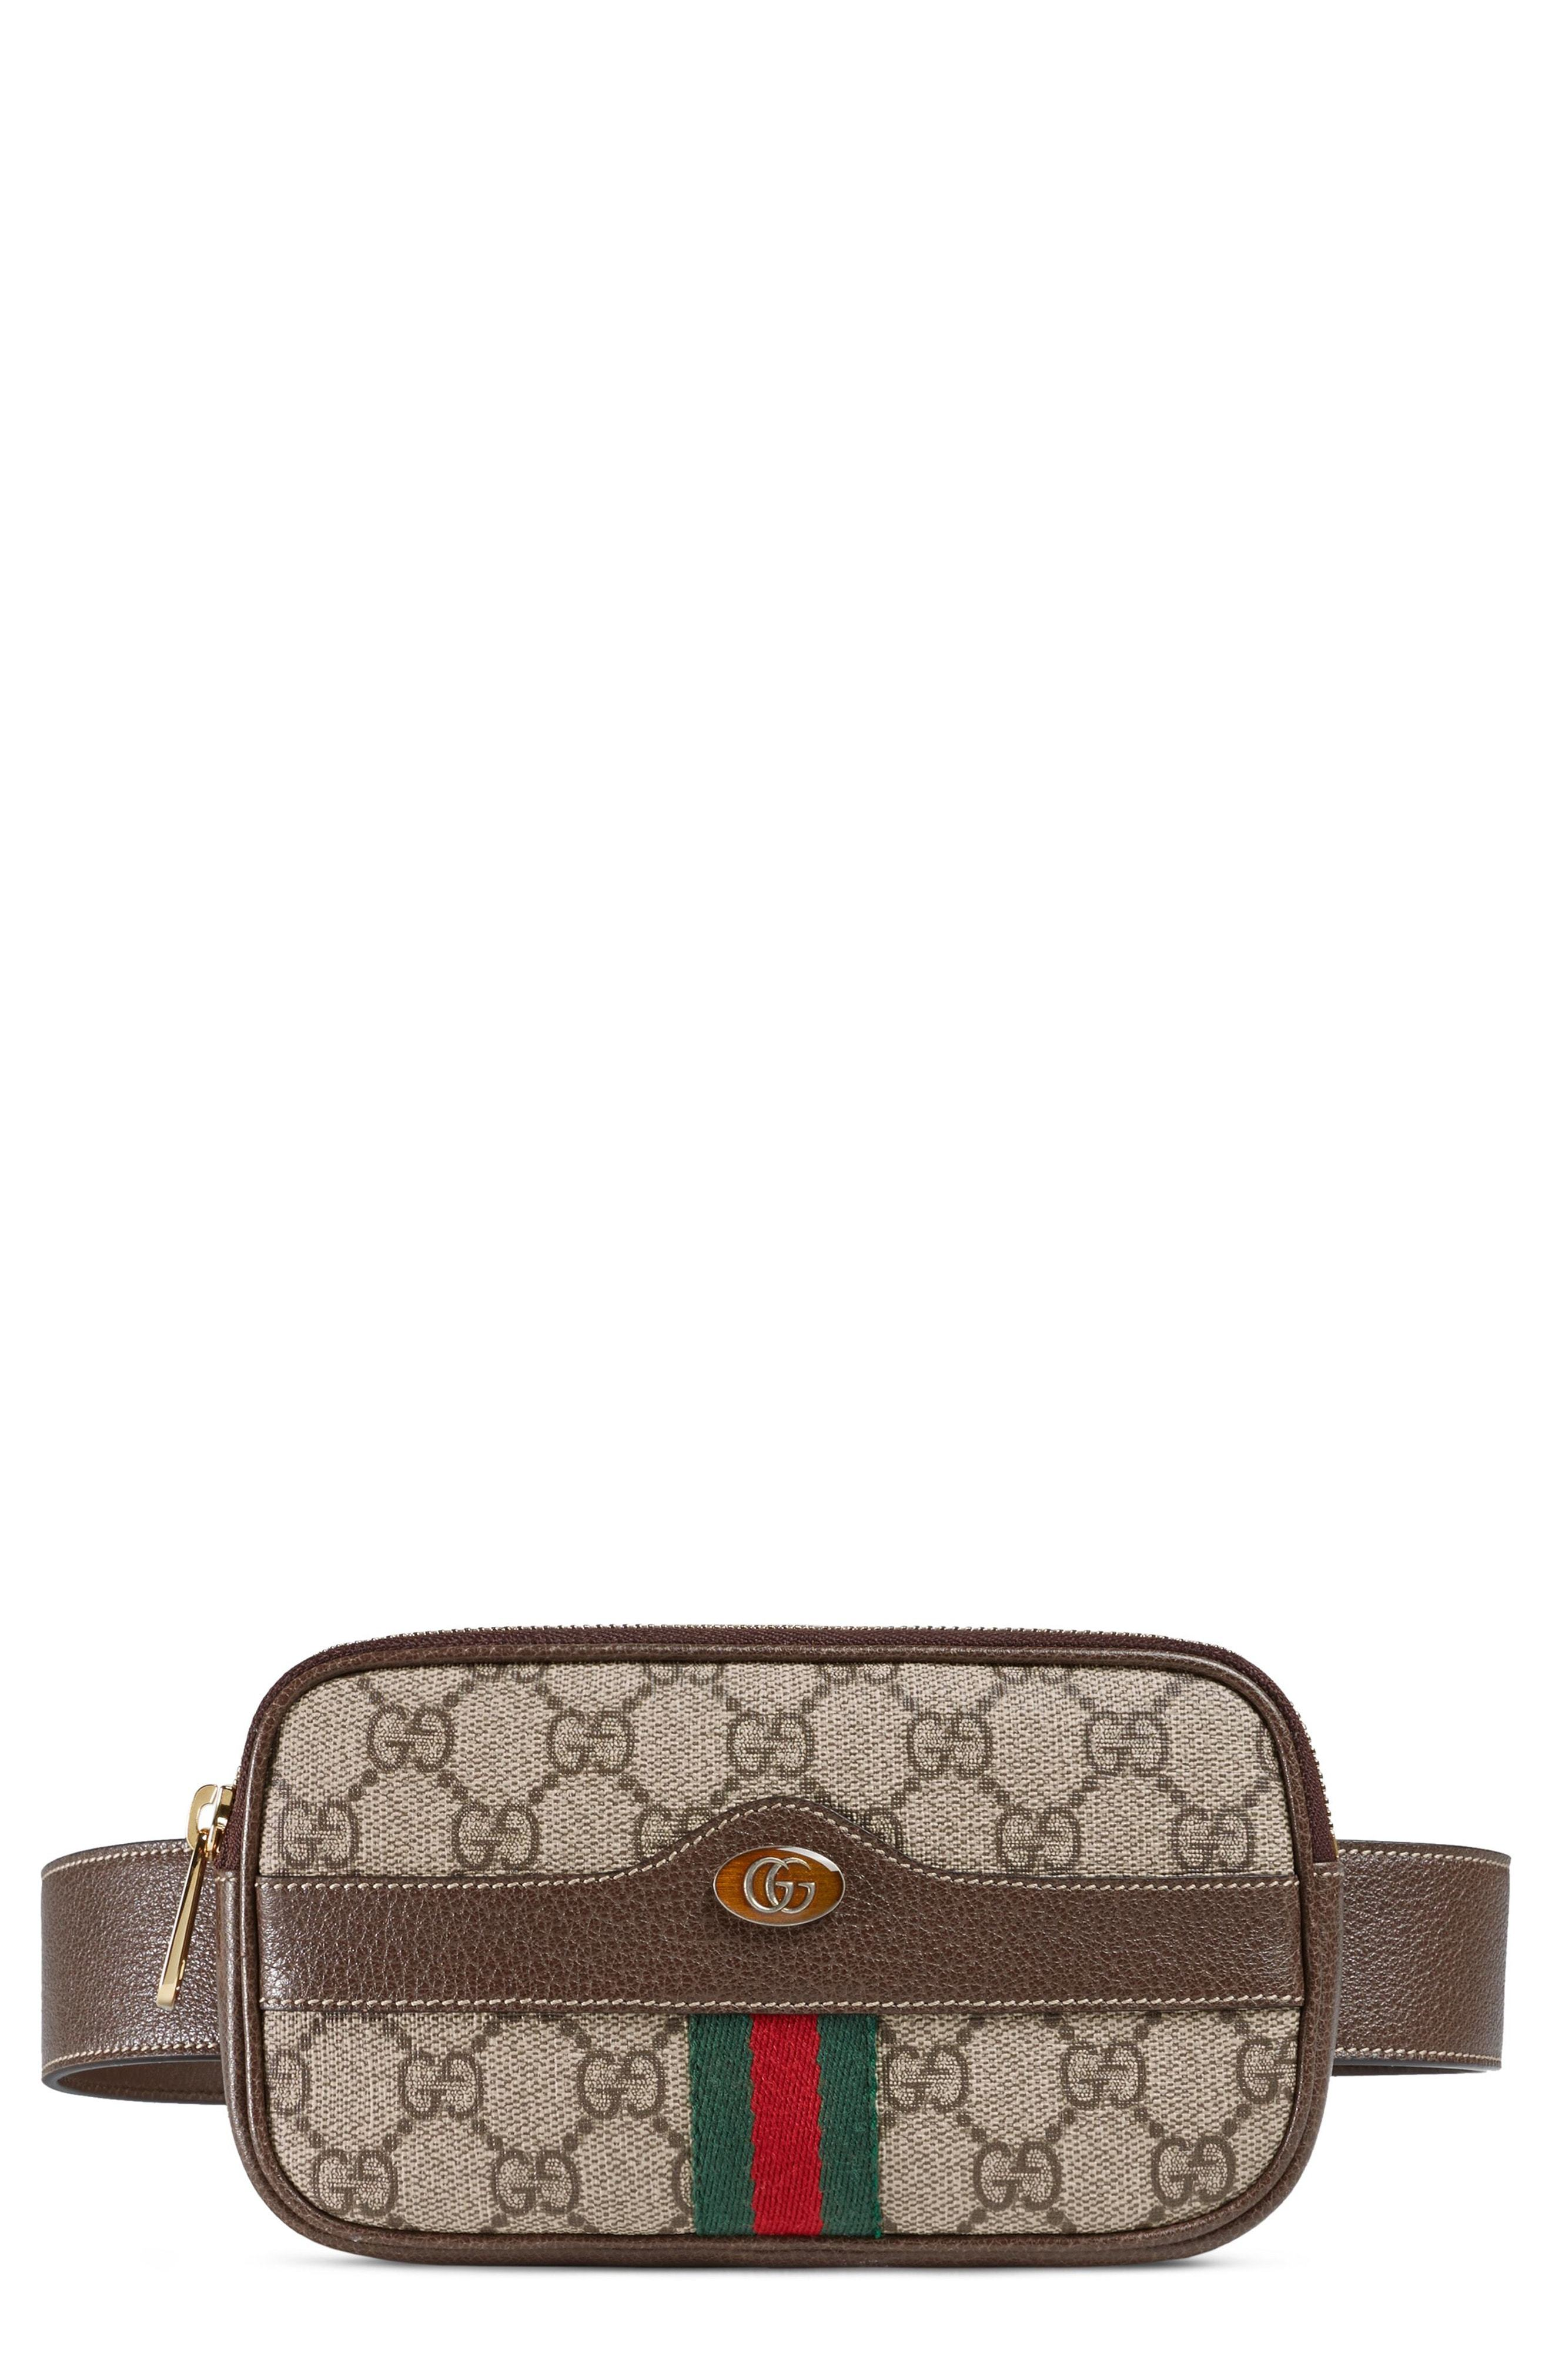 b1d54b7e81b5b3 Gucci Ophidia Gg Supreme Small Canvas Belt Bag, $750 | Nordstrom ...